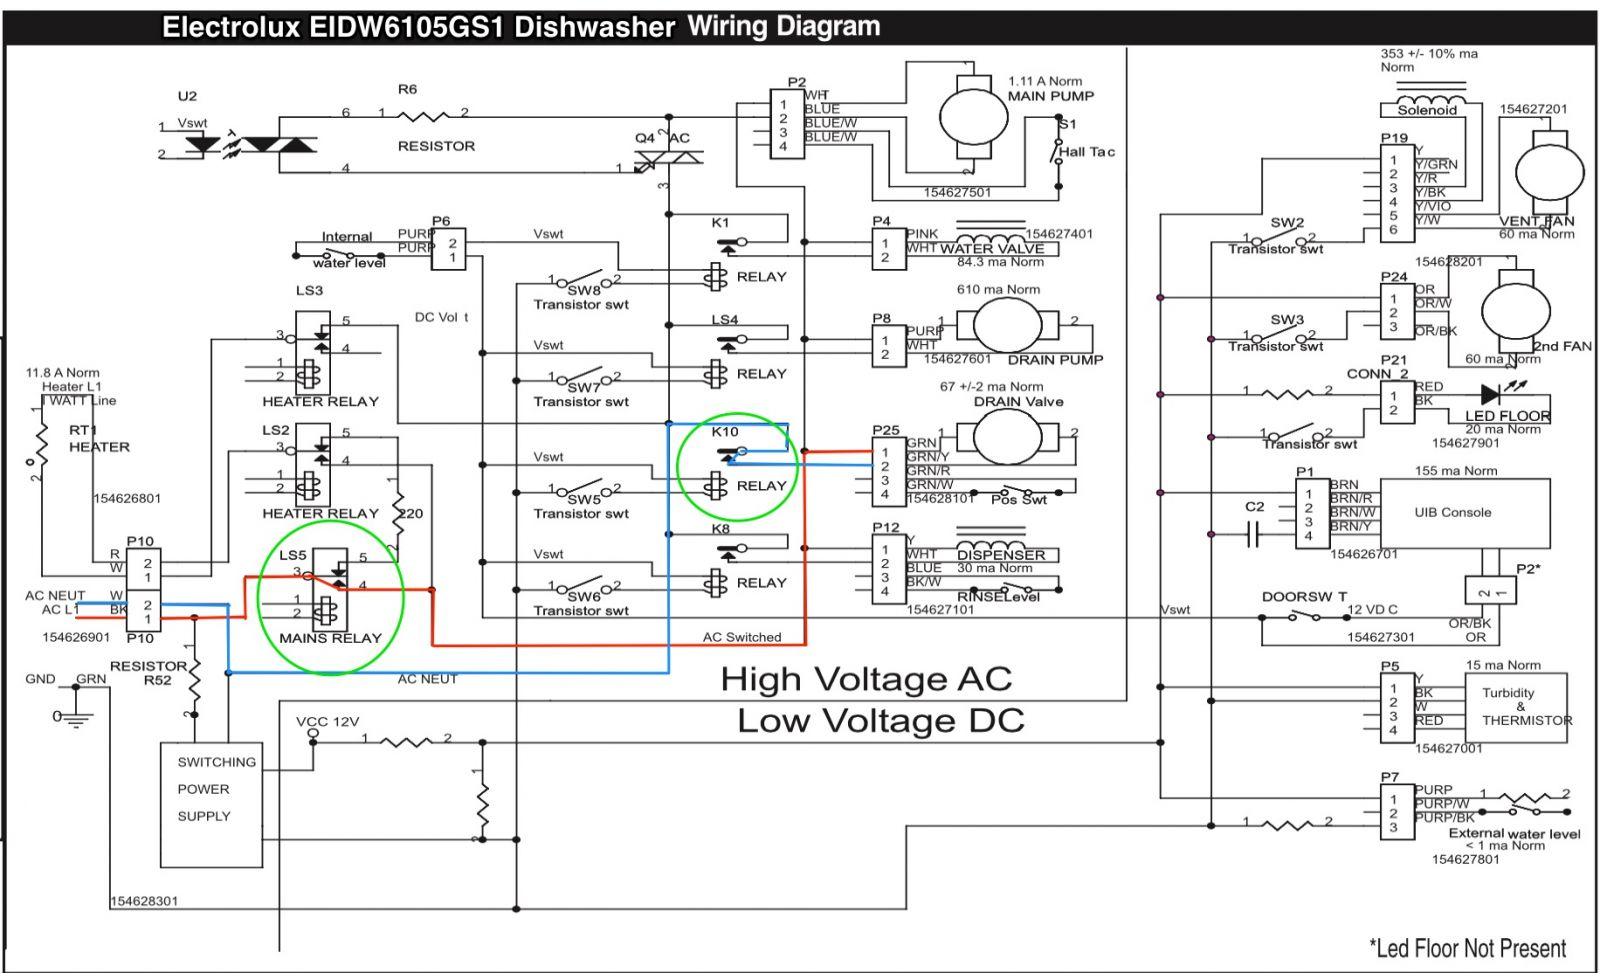 hight resolution of electrolux eidw6105gs1 dishwasher wiring diagram the appliantology kenmore dishwasher wiring diagram dishwasher wiring diagram